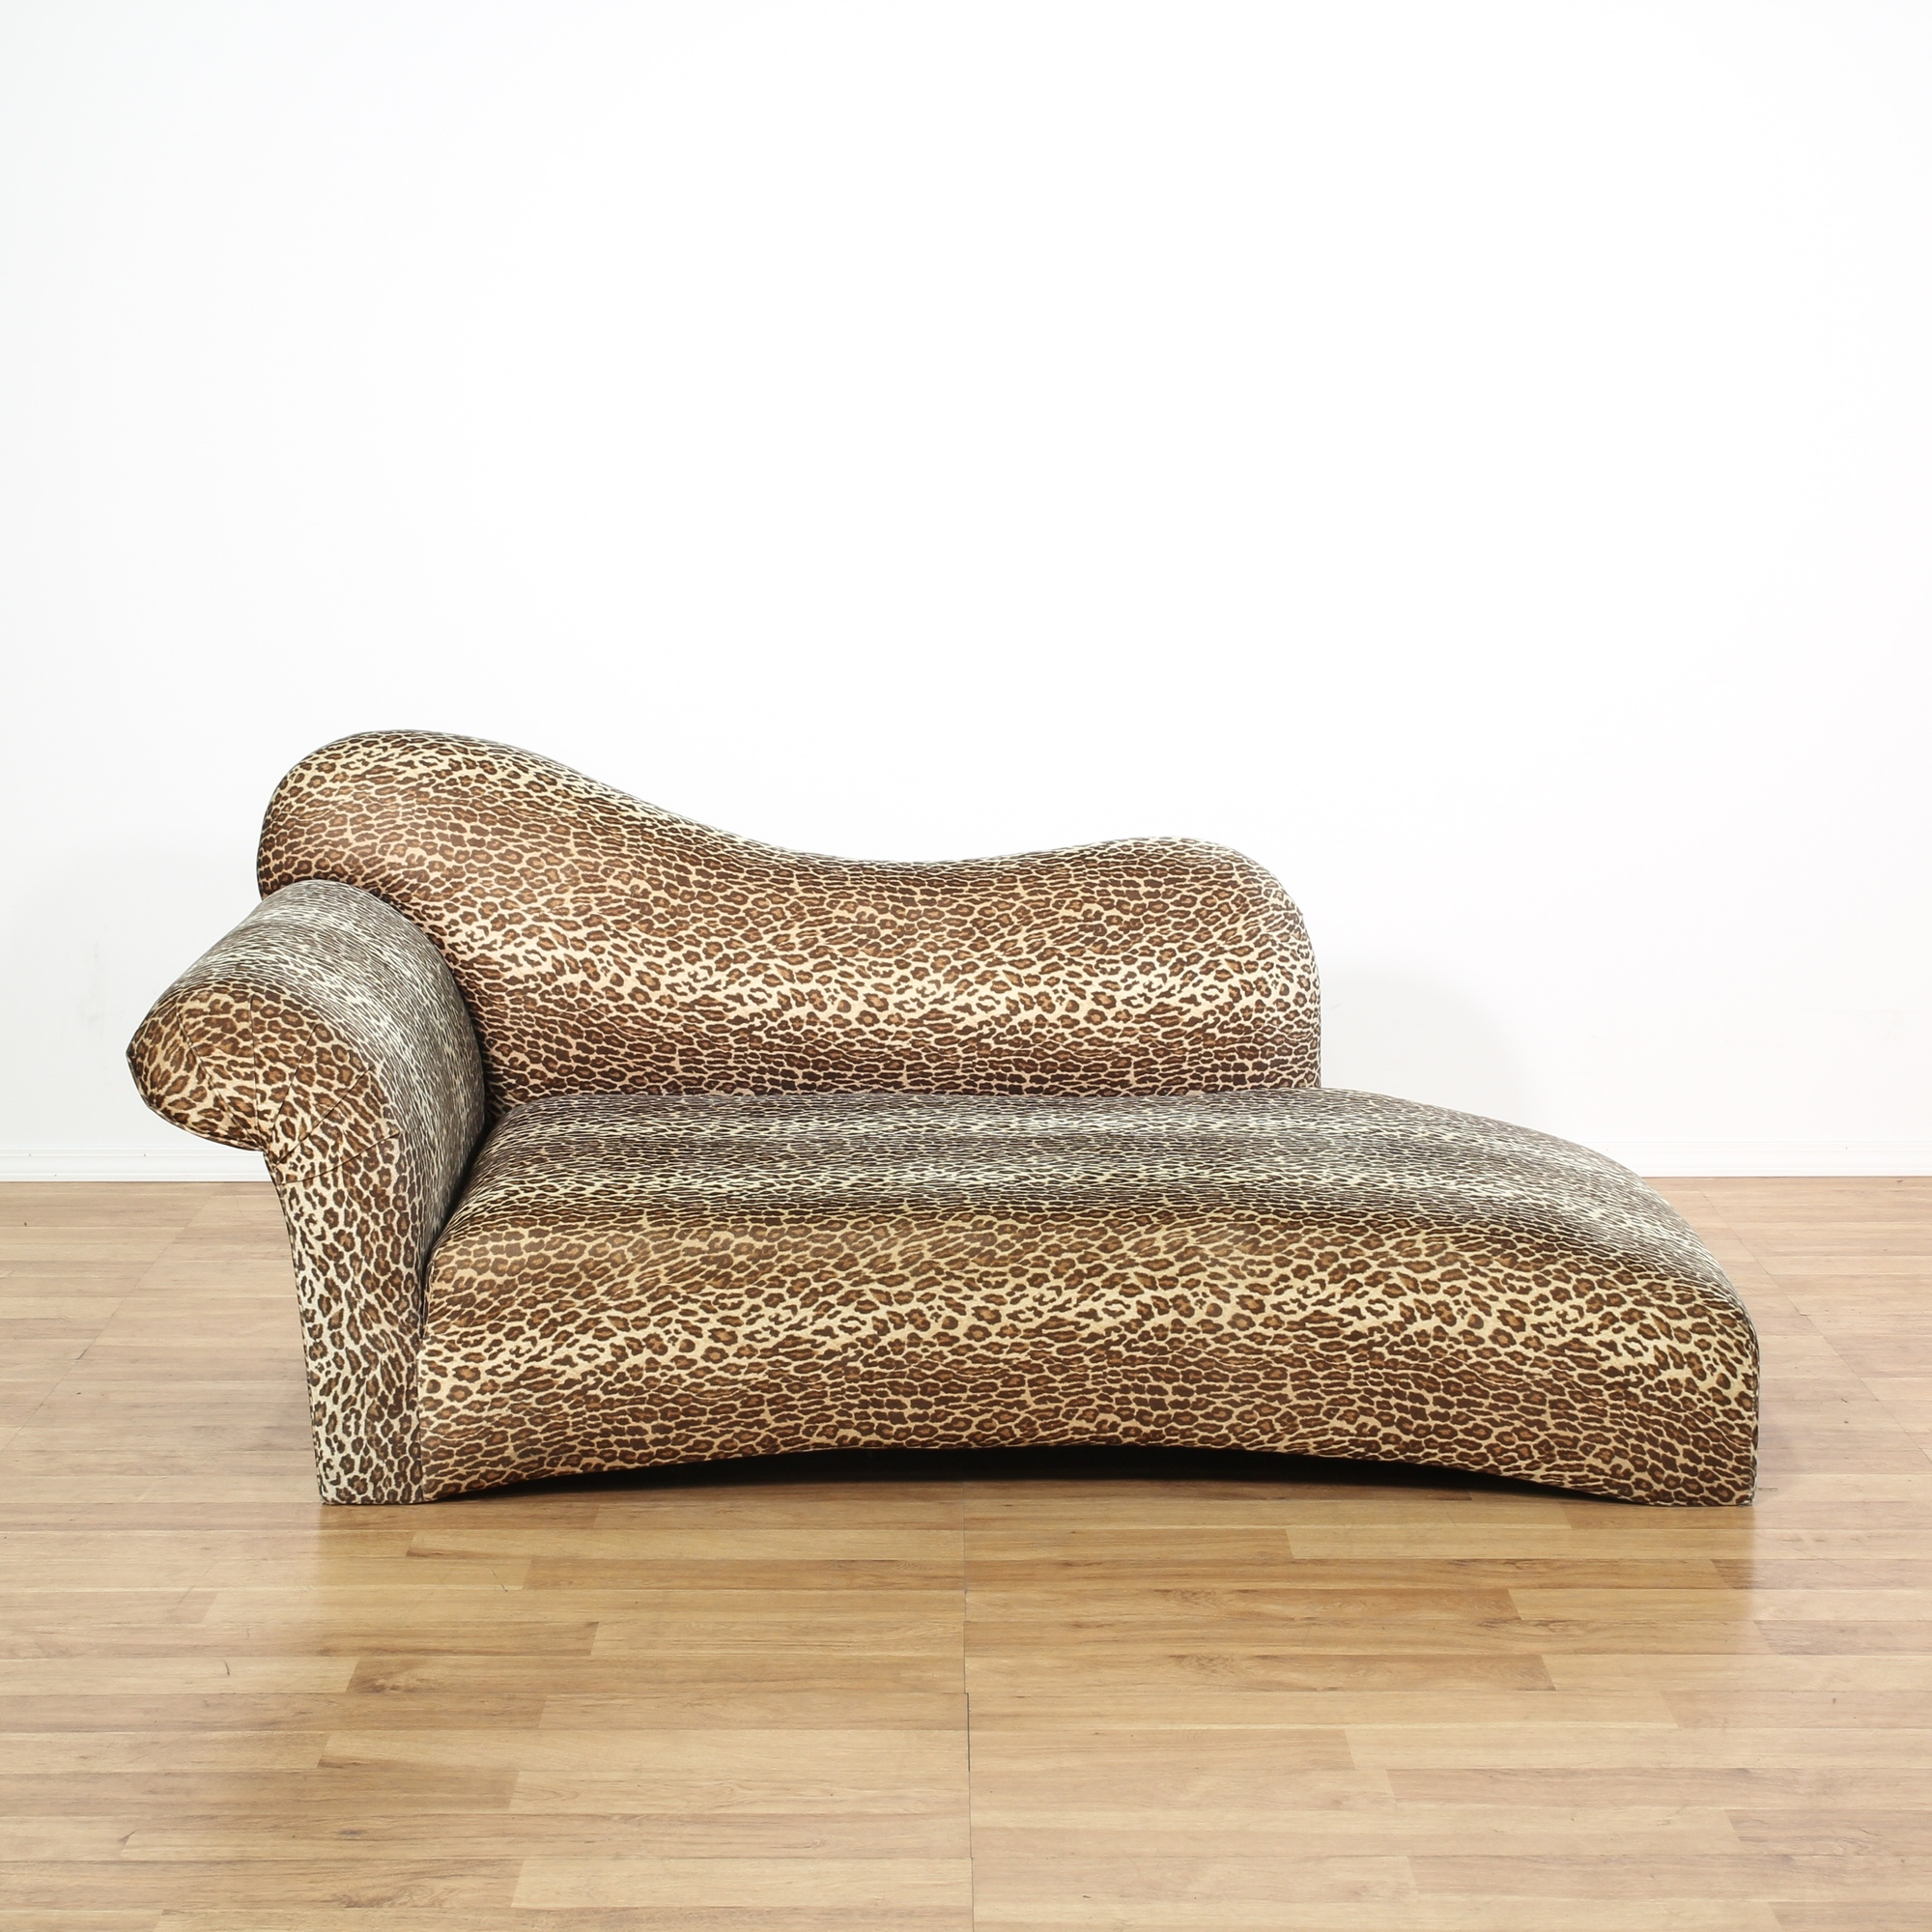 Leopard Print Chaise Lounge Loveseat Vintage Furniture